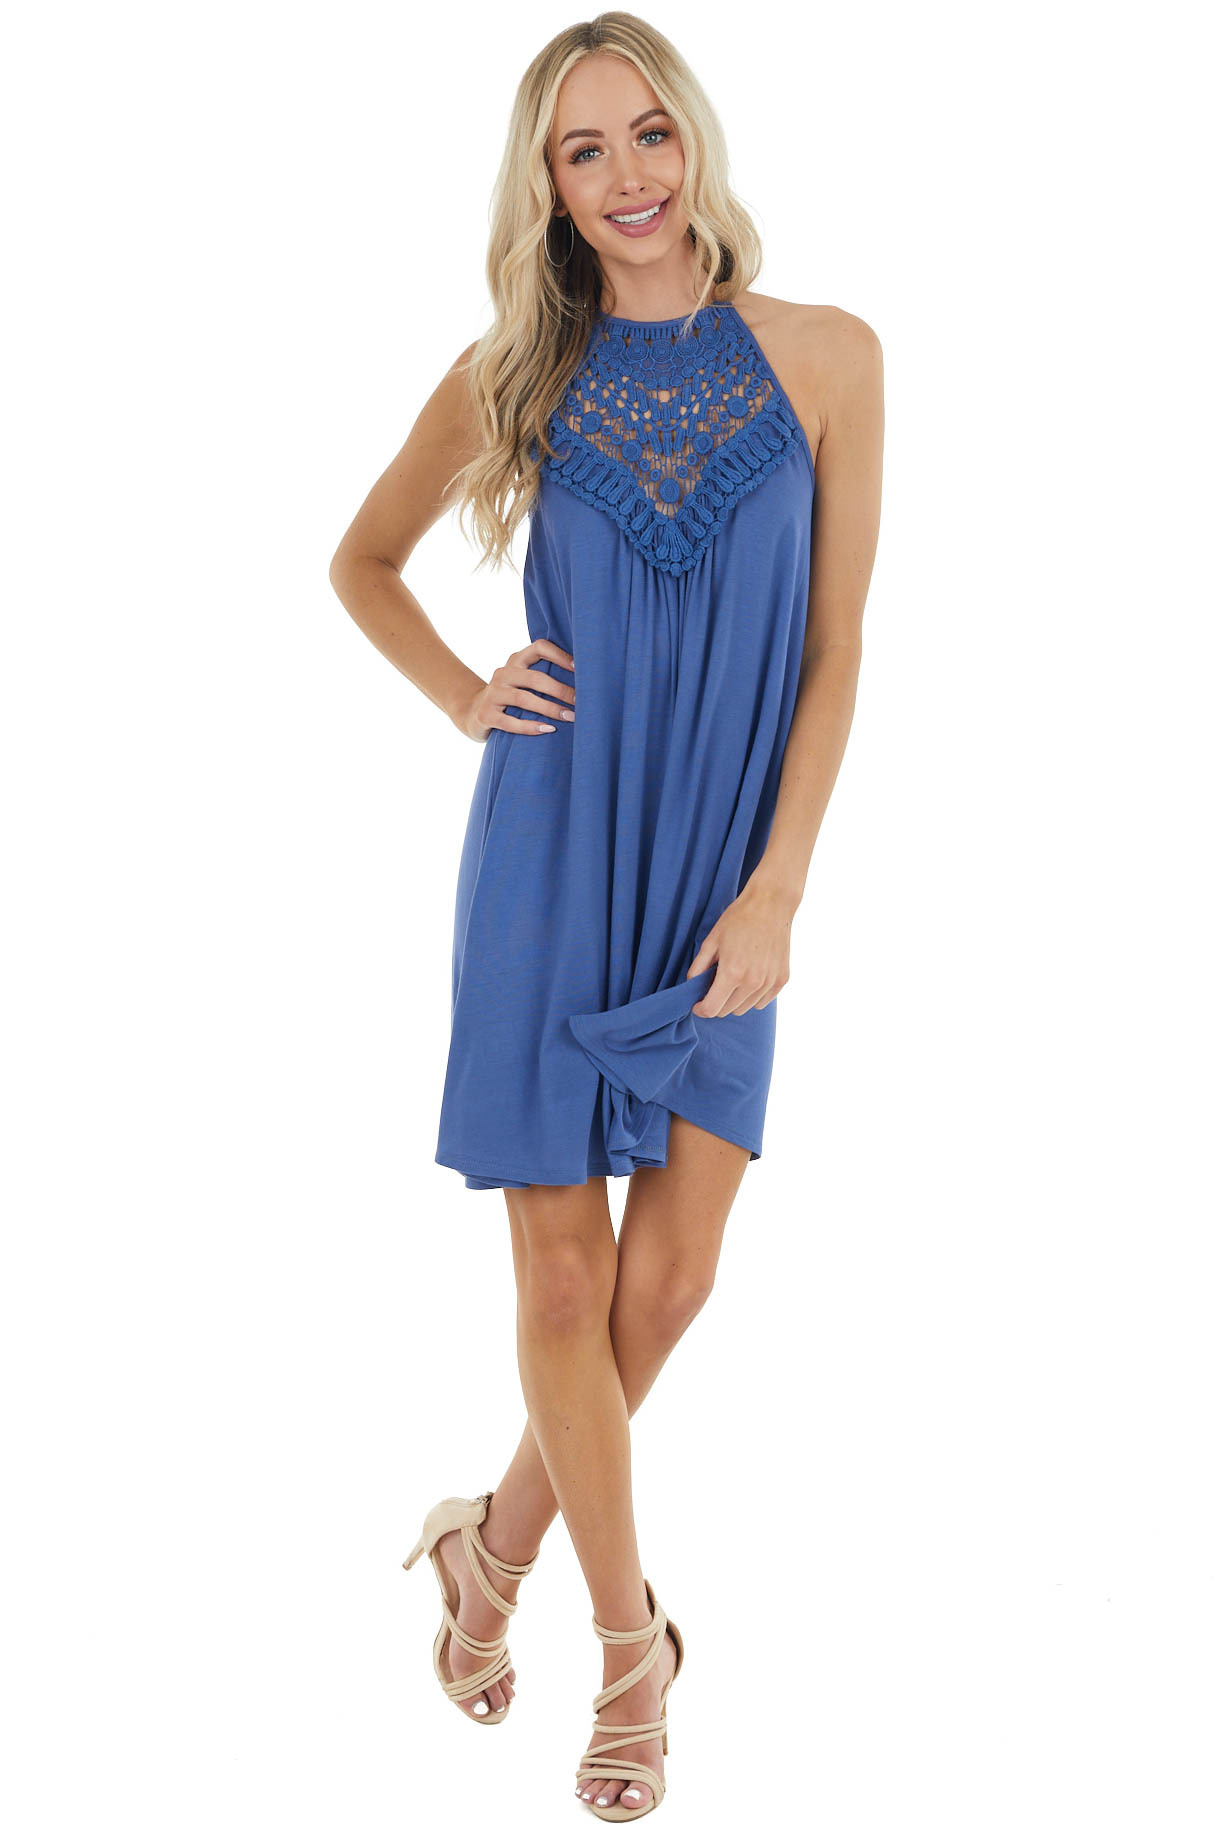 Ocean Blue Short Dress with Lace Front and Keyhole Back